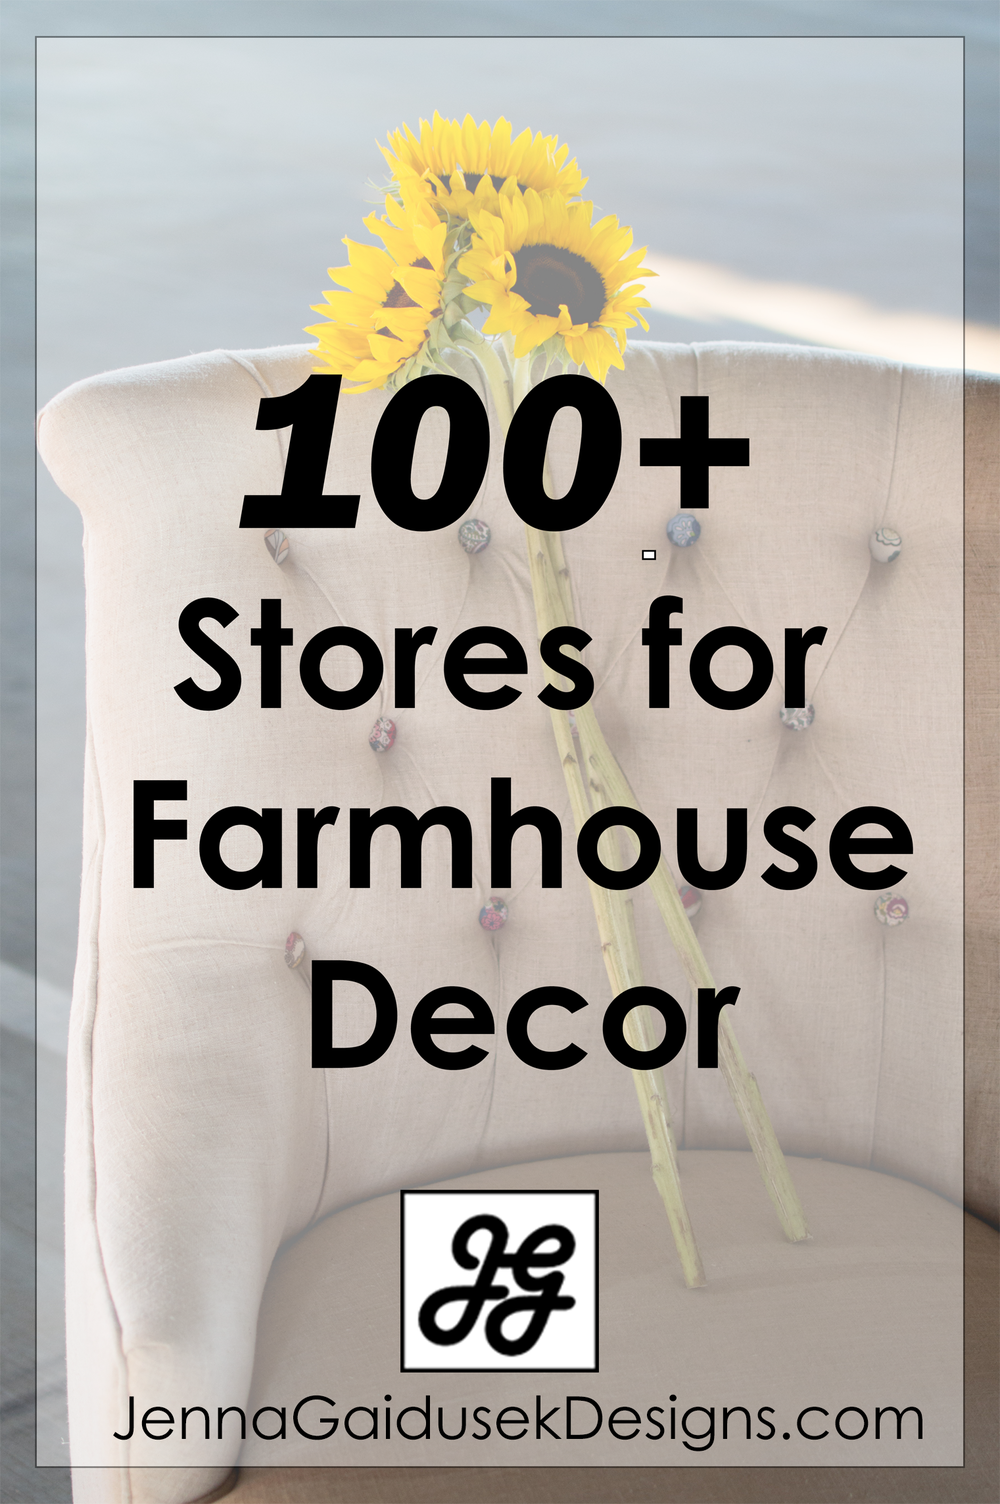 100+ farmhouse stores